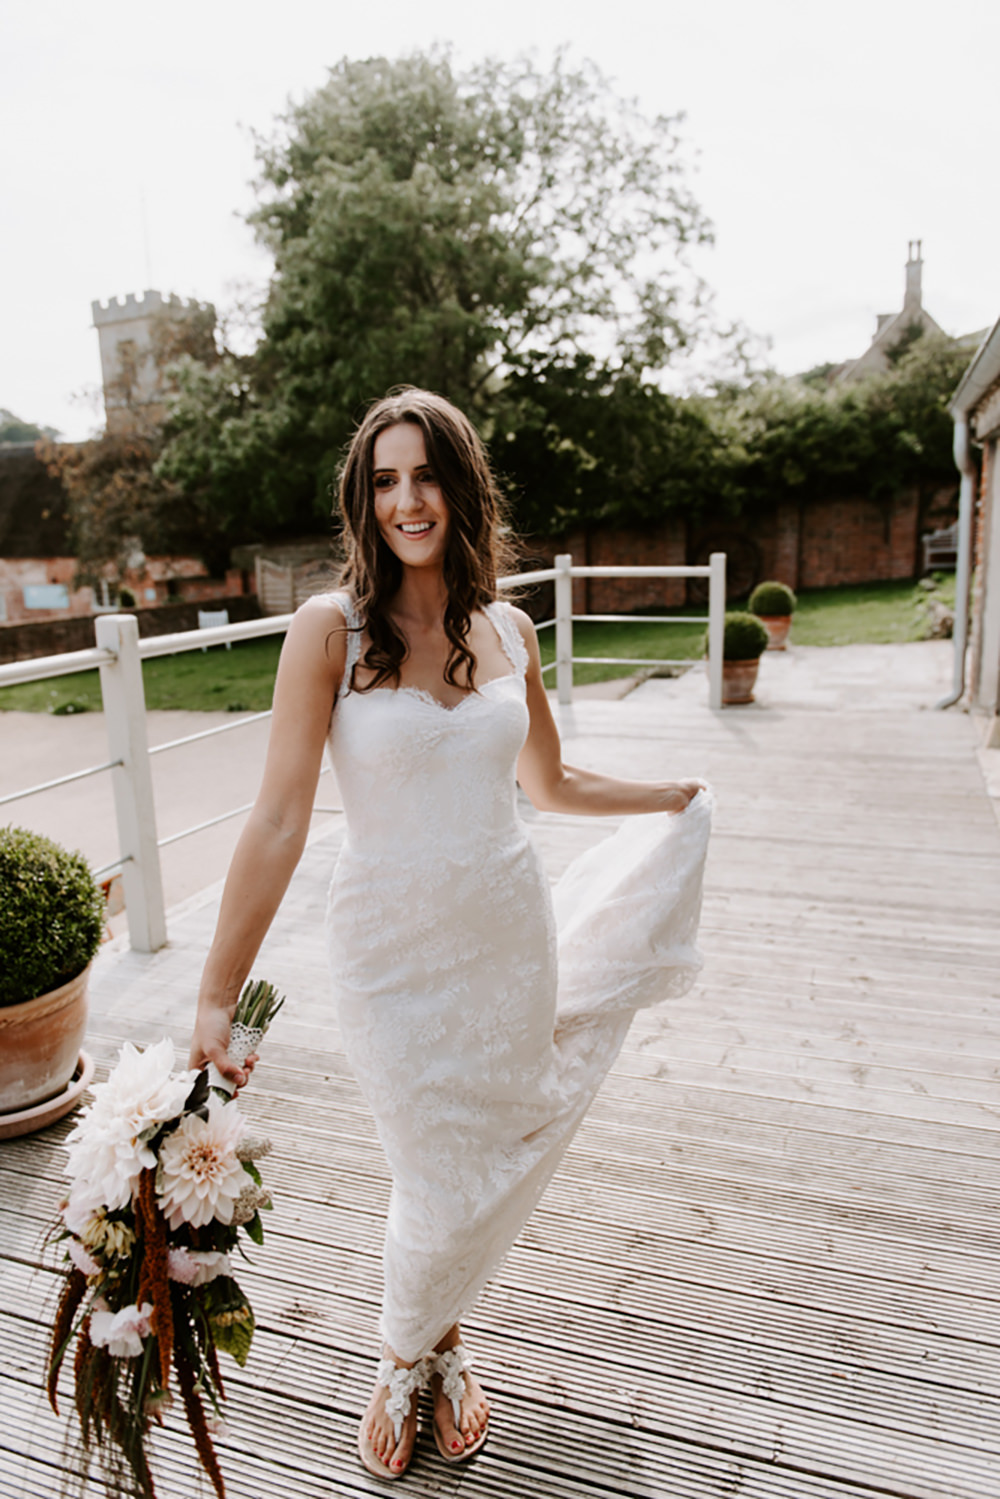 Bride Bridal Dress Gown Lace Straps Train Ethical Wedding Ideas Sadie Osborne Photography